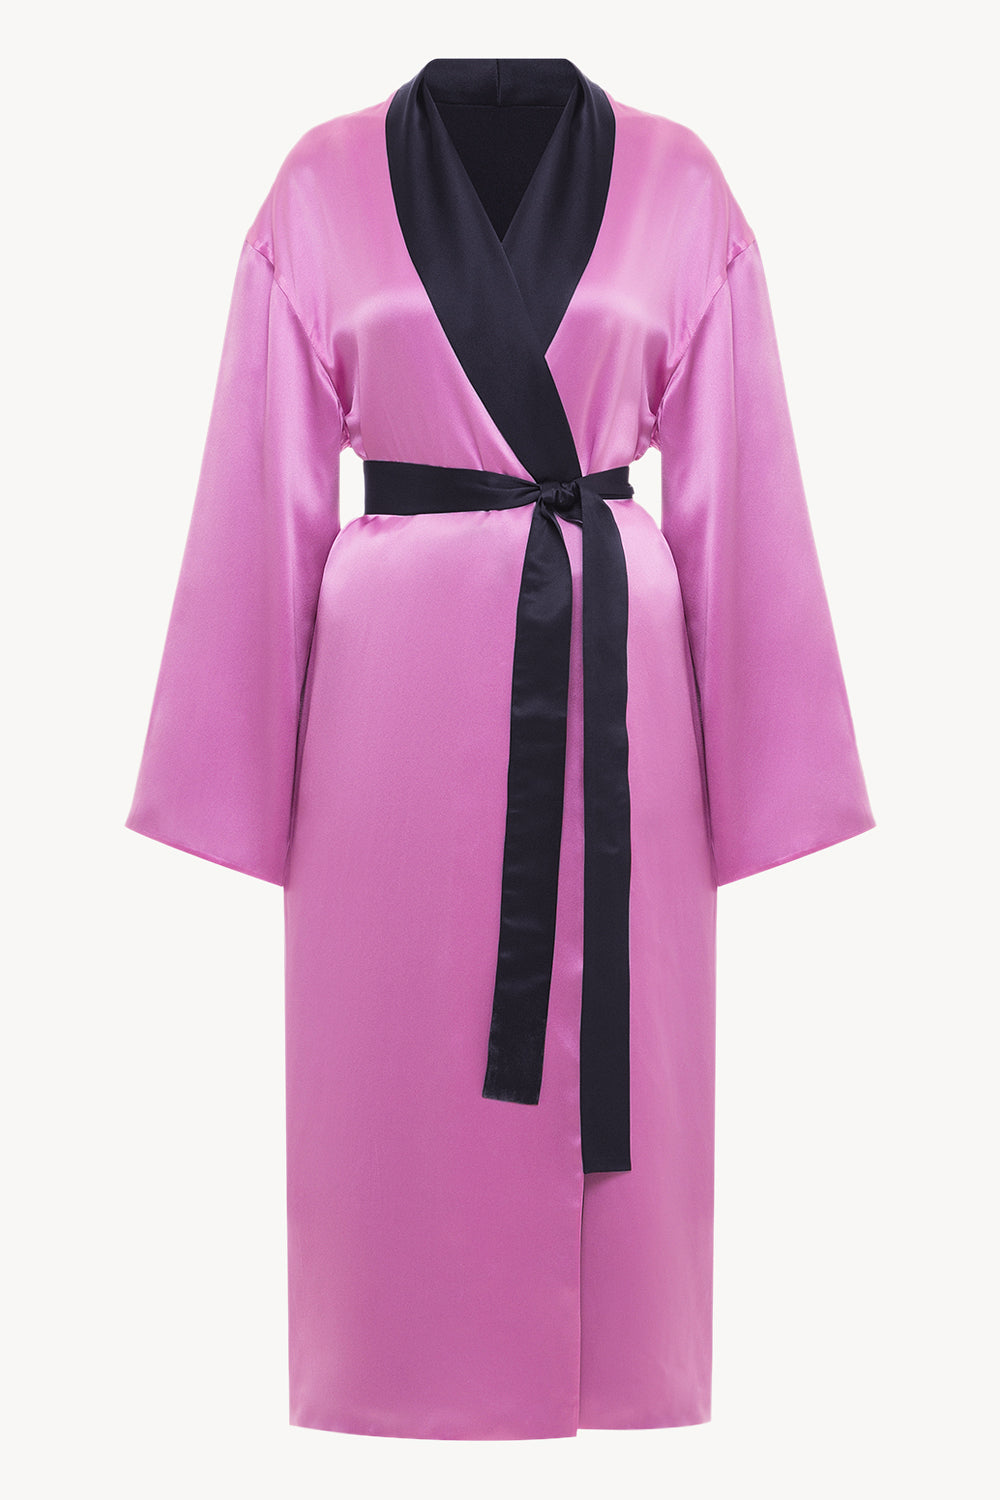 Reversible midi silk robe featuring a relaxed fit in fuchsia/navy